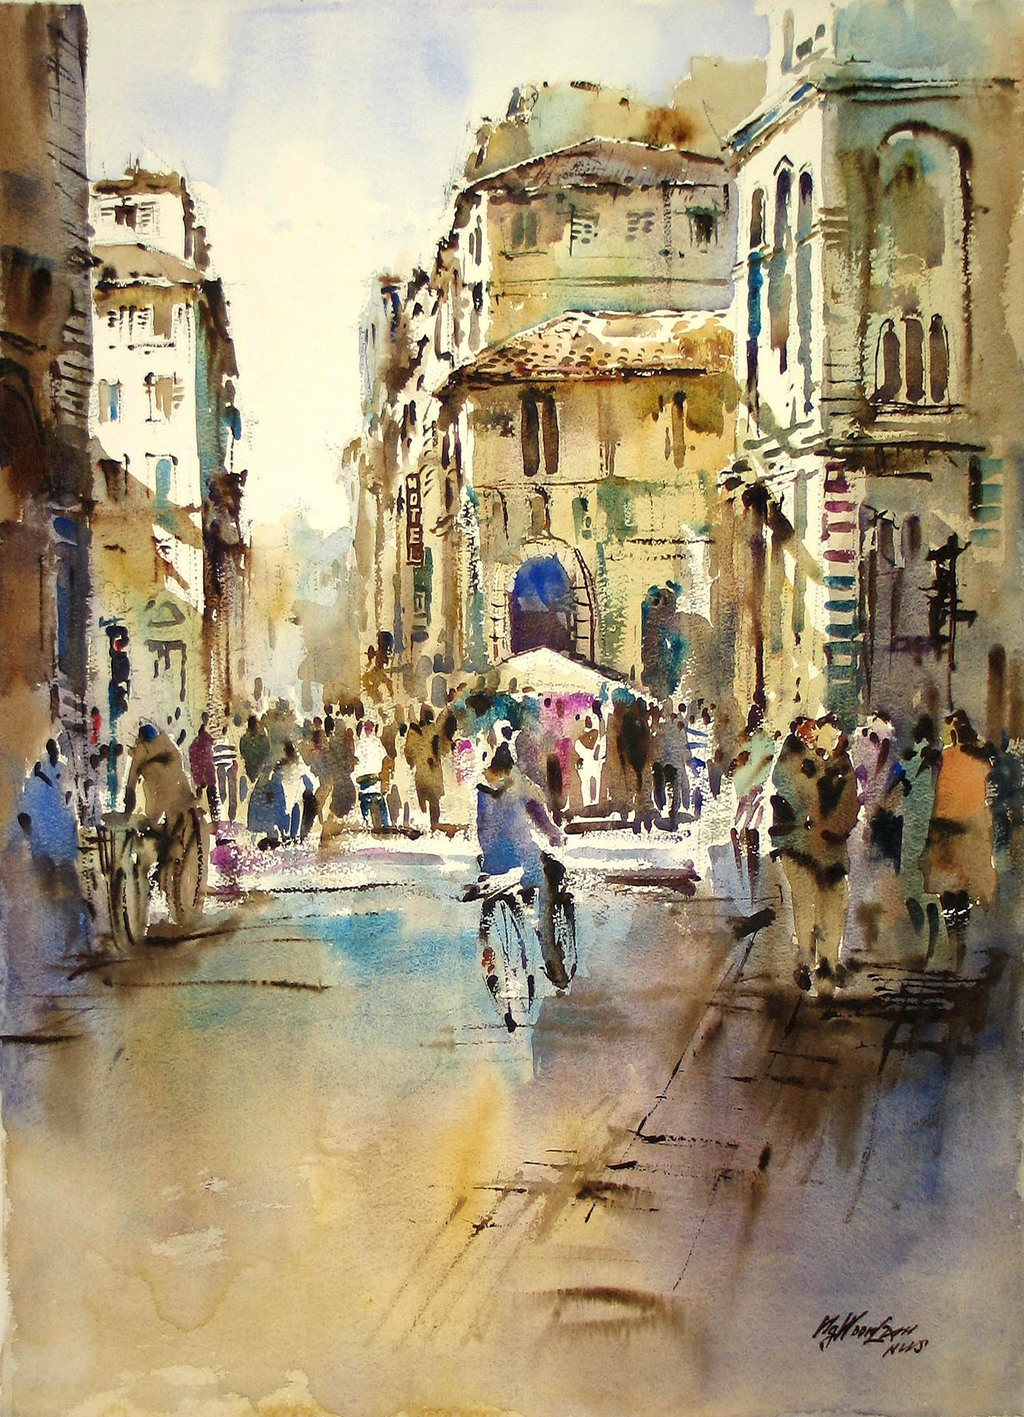 Watercolor artist websites - Singapore Watercolour Society Artist Ng Woon Lam Artwork Modern Impressionist Watercolor Duomo Florence Original Watercolor Cityscape Art